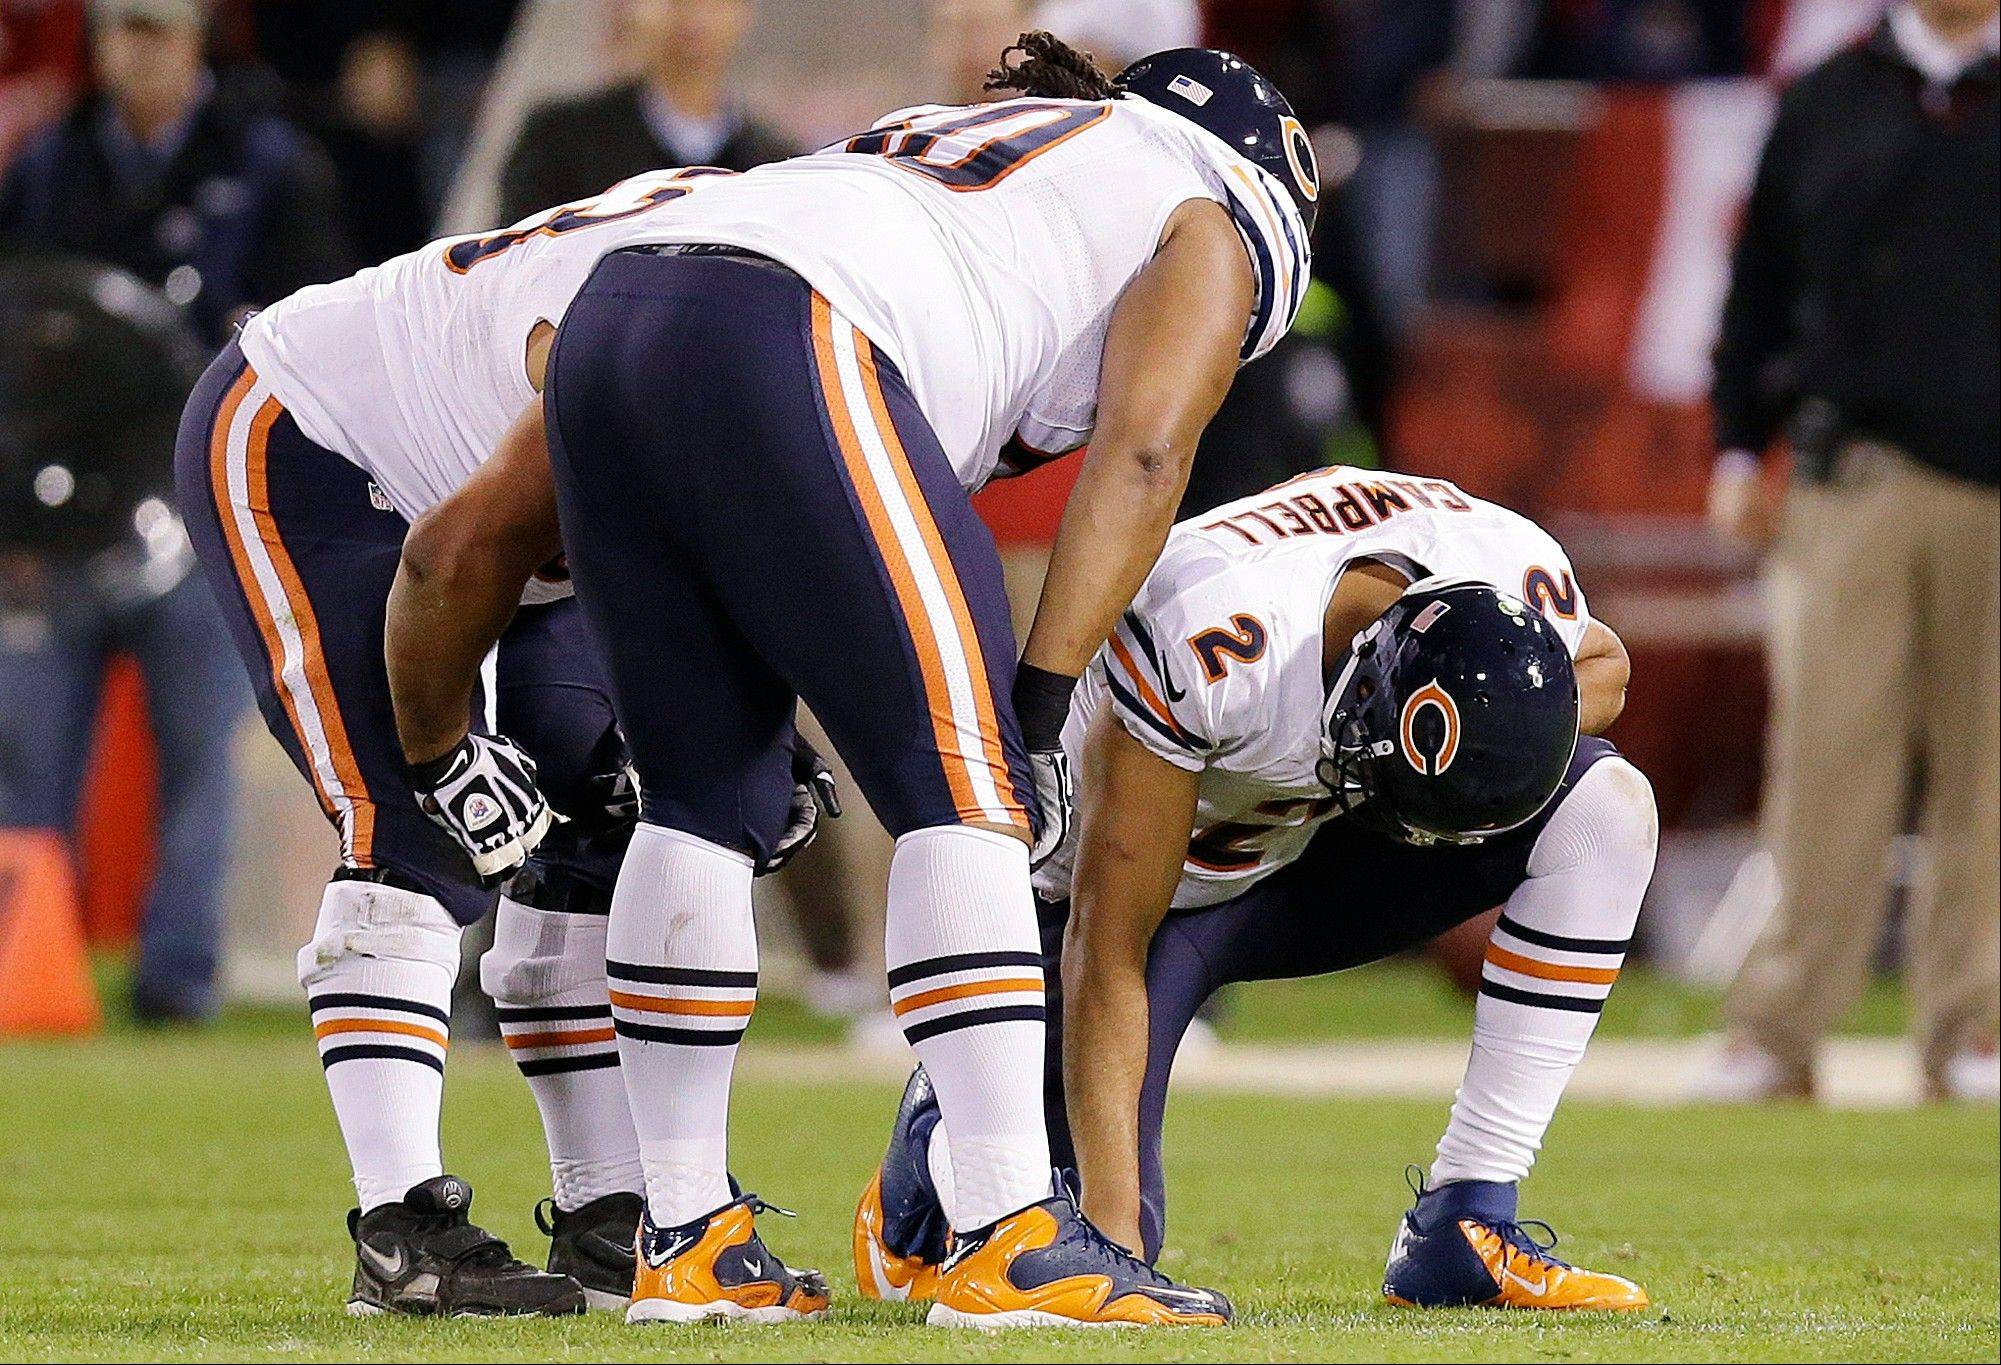 Bears quarterback Jason Campbell got that rundown feeling in Monday night's 32-7 loss at San Francisco, the 49ers finishing with 6 sacks.